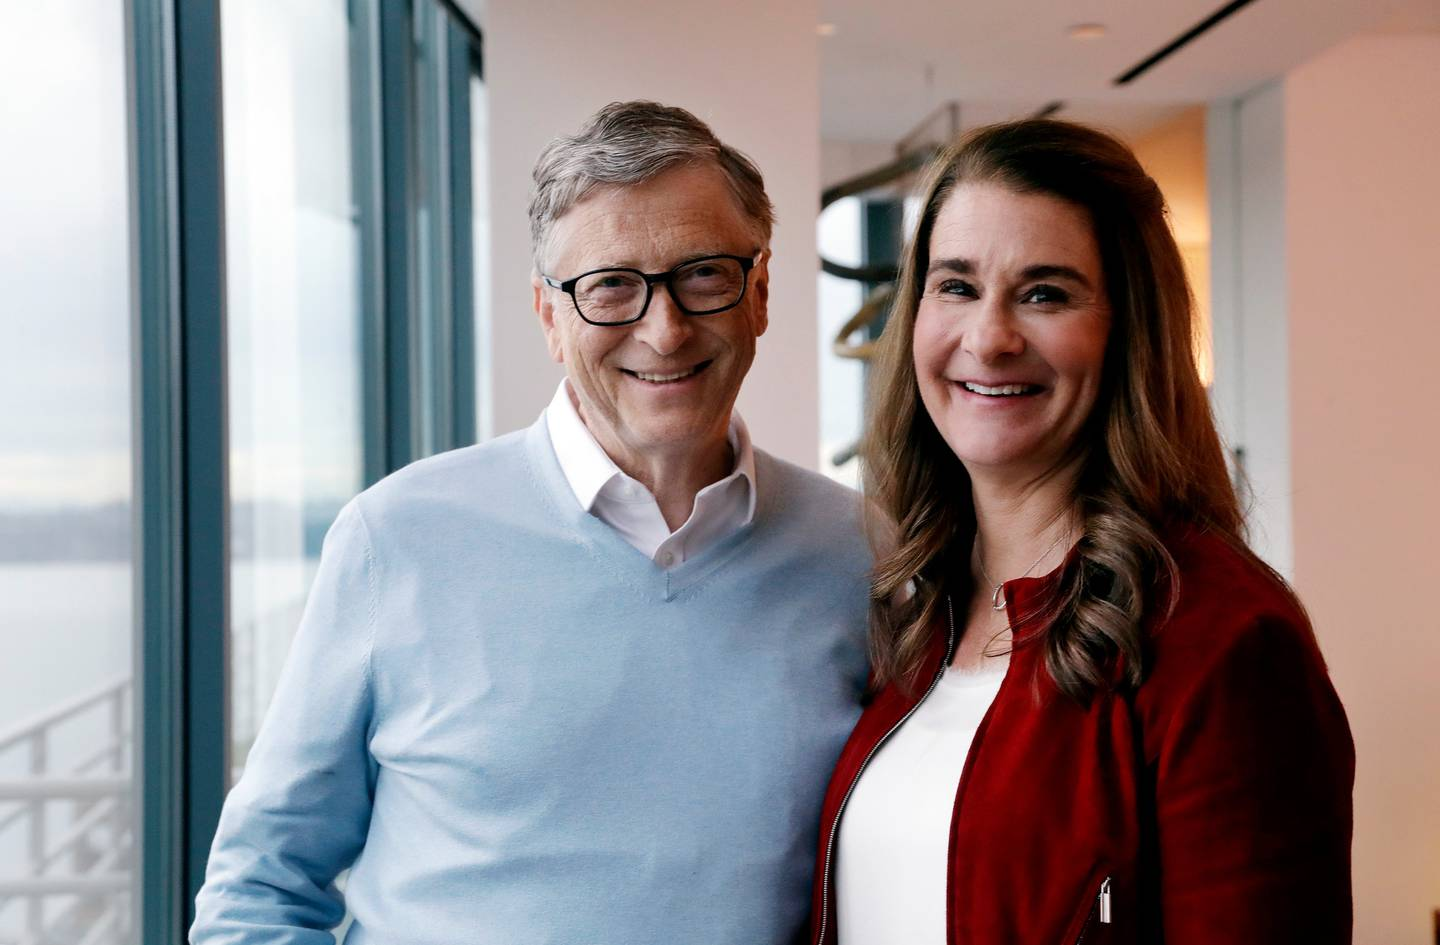 Bill and Melinda Gates are co-chairs of the Gates Foundation which has provided more than US$50 billion in grants since its formation in 2000. Photo / AP